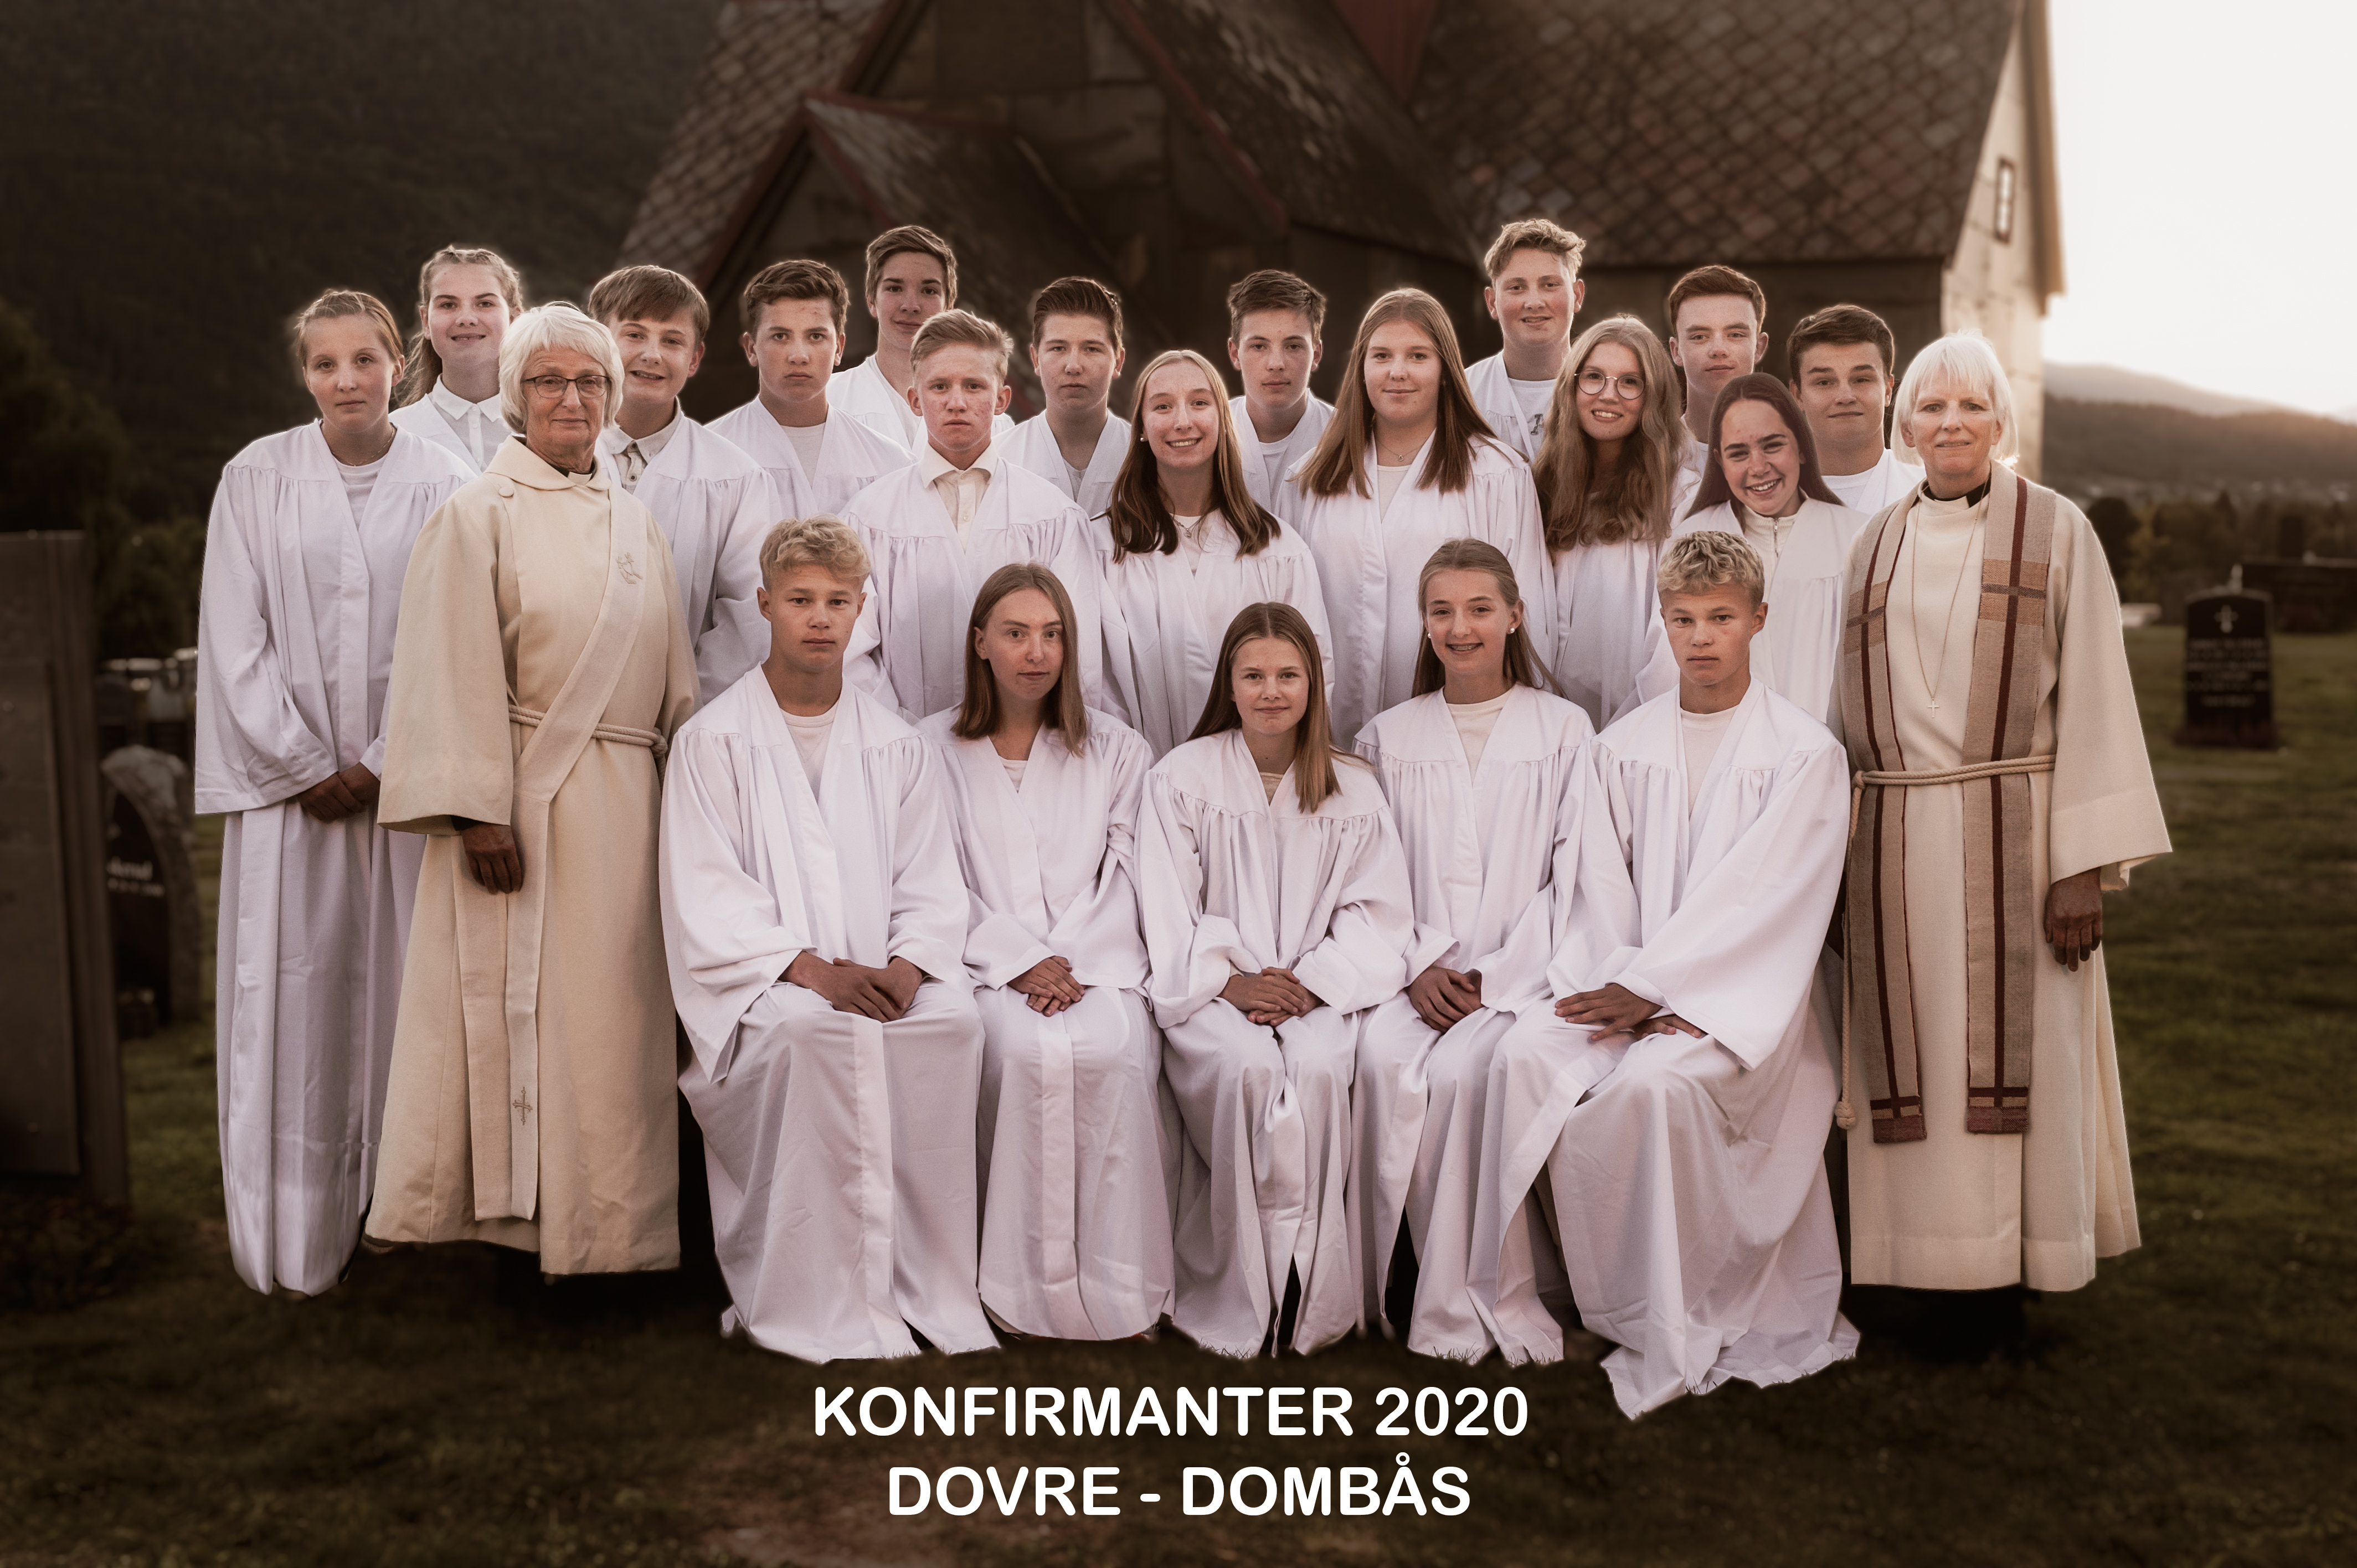 Konfirmanter-2020.jpg